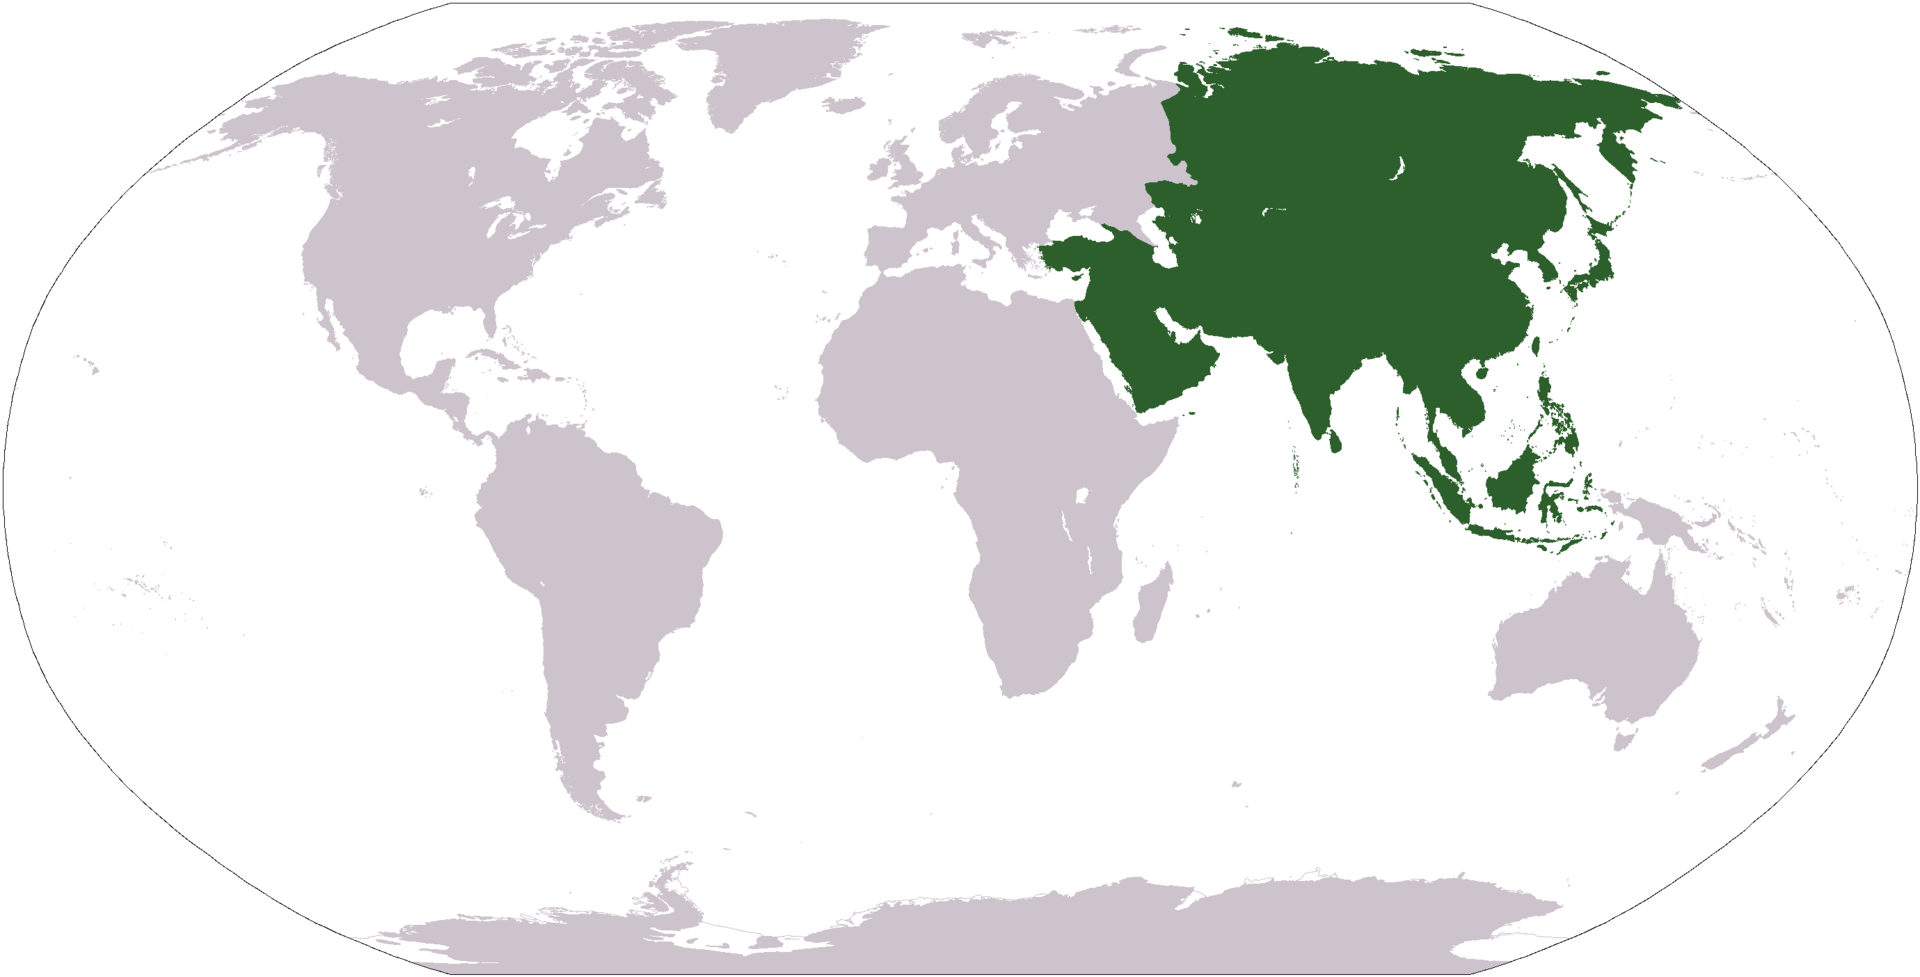 World map with Asia highlighted in green